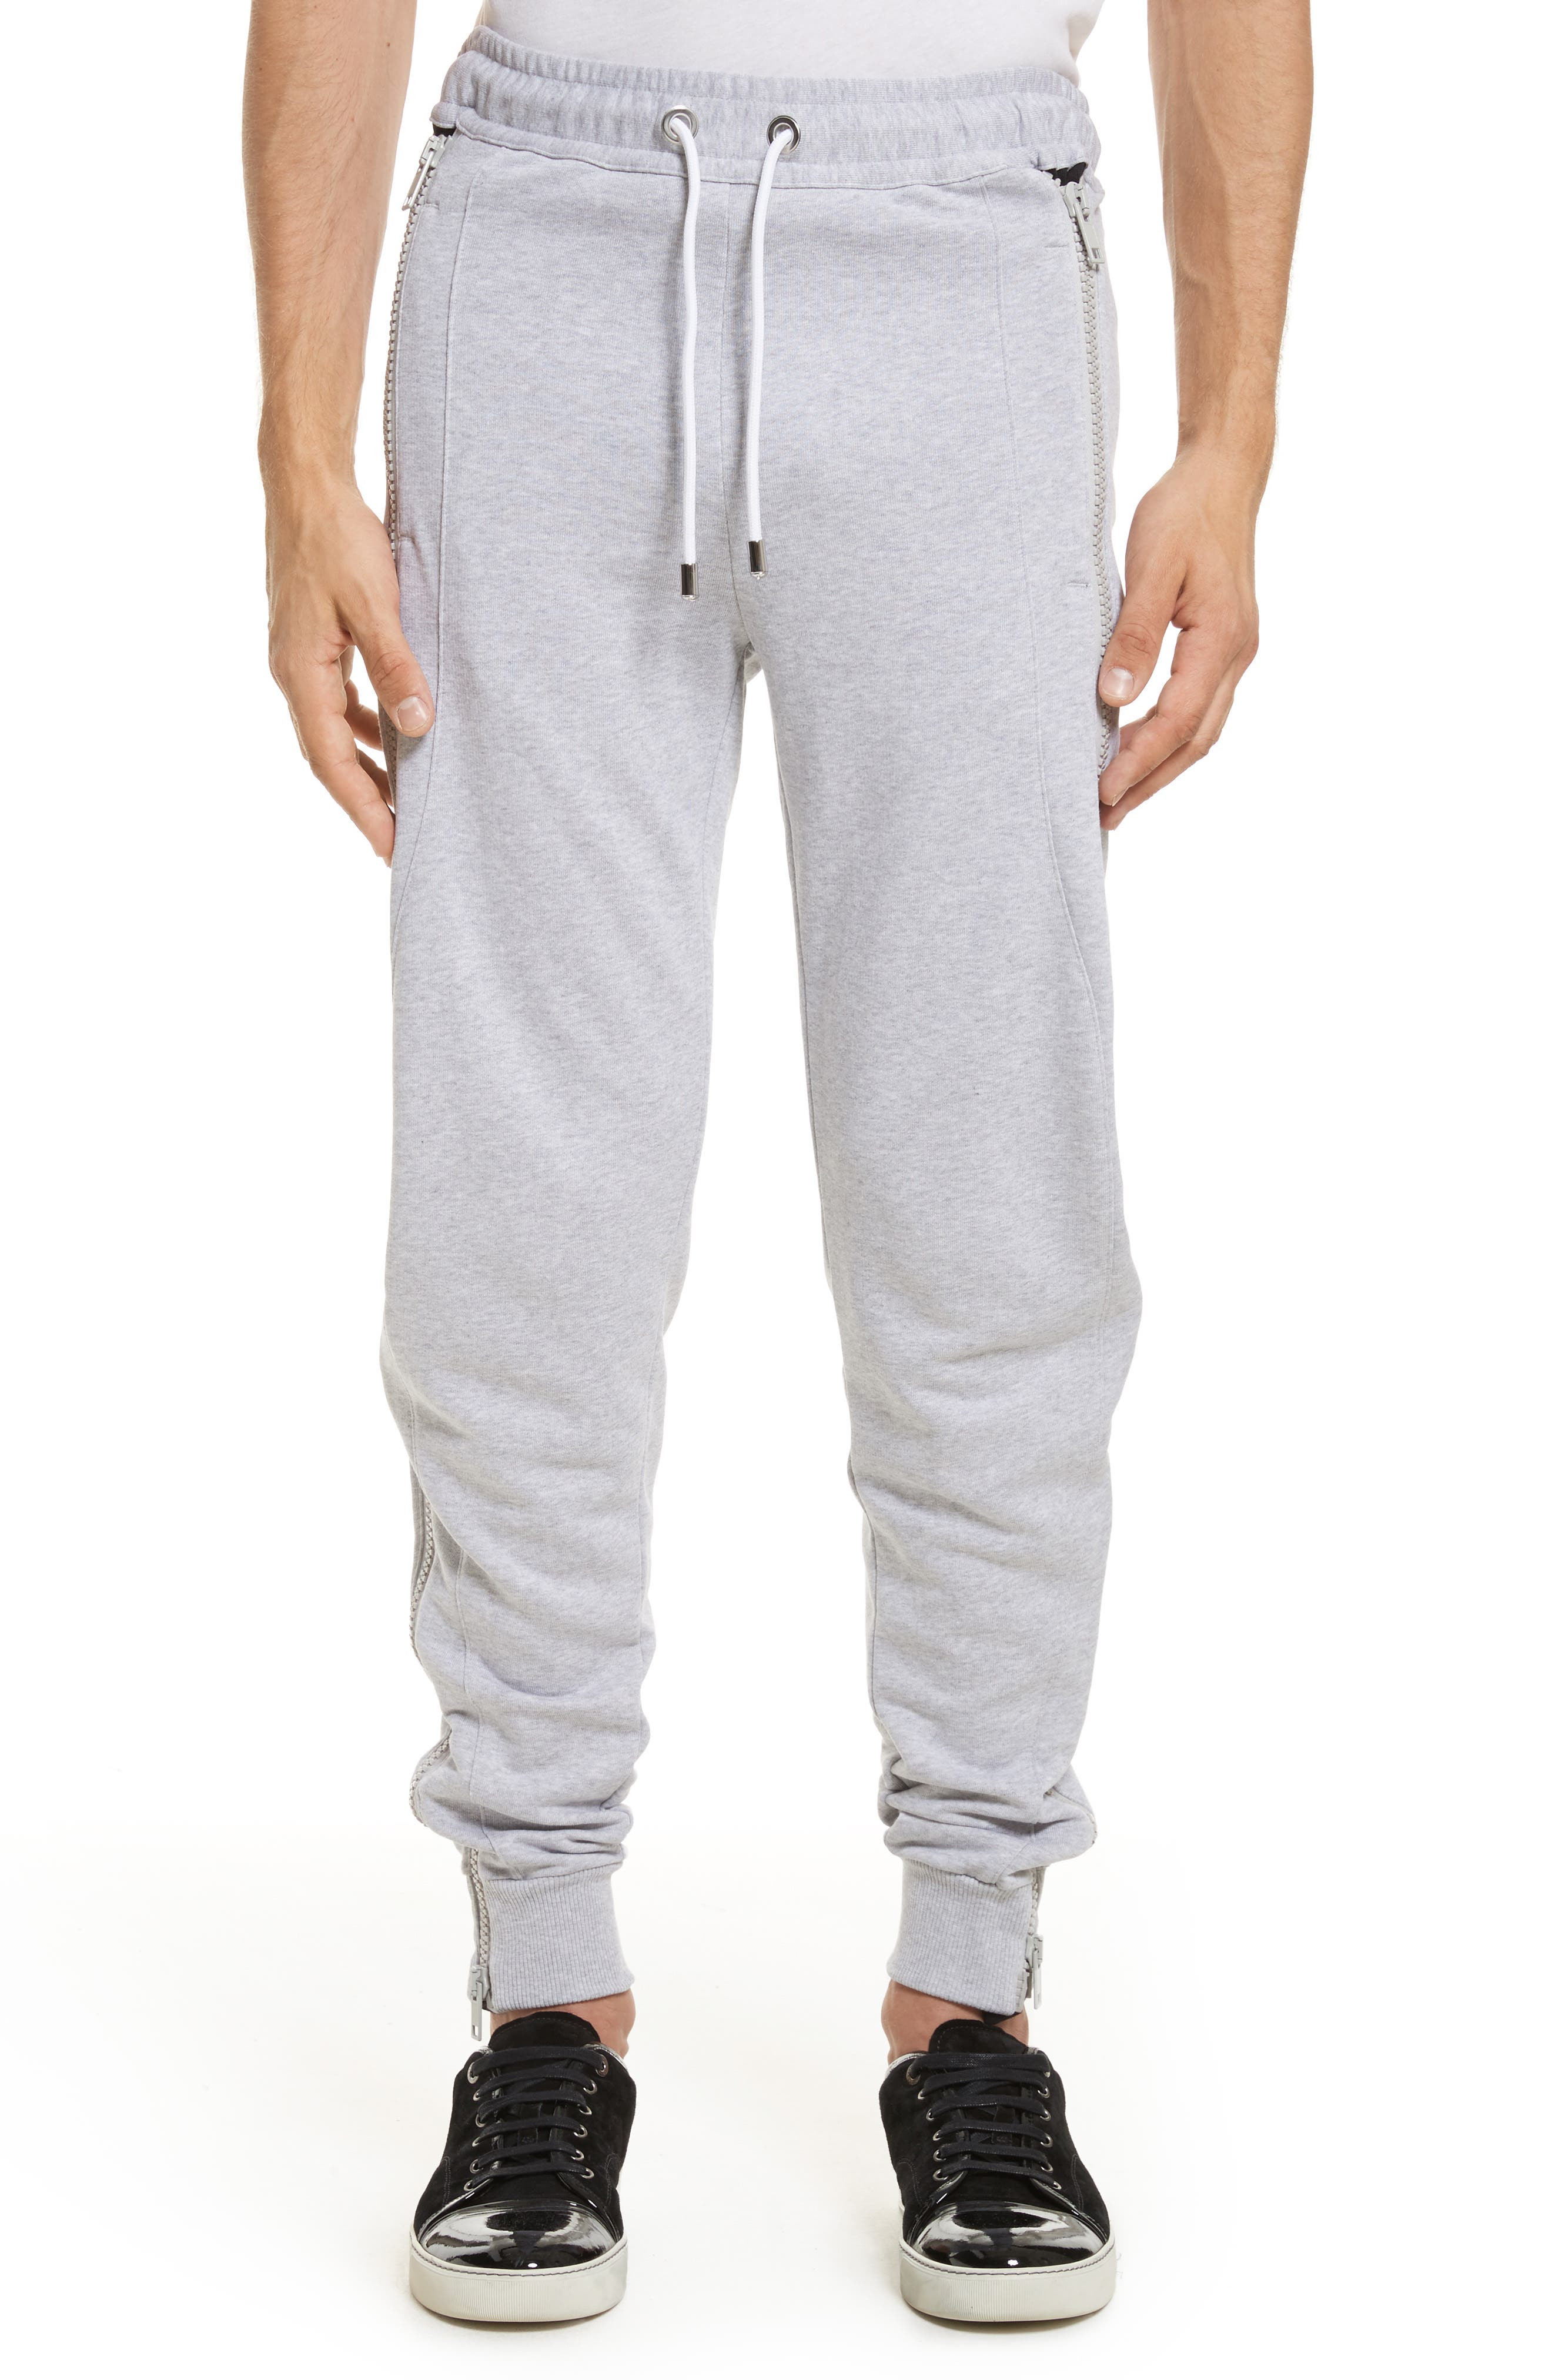 Alternate Image 1 Selected - VERSUS by Versace Side Zip Sweatpants